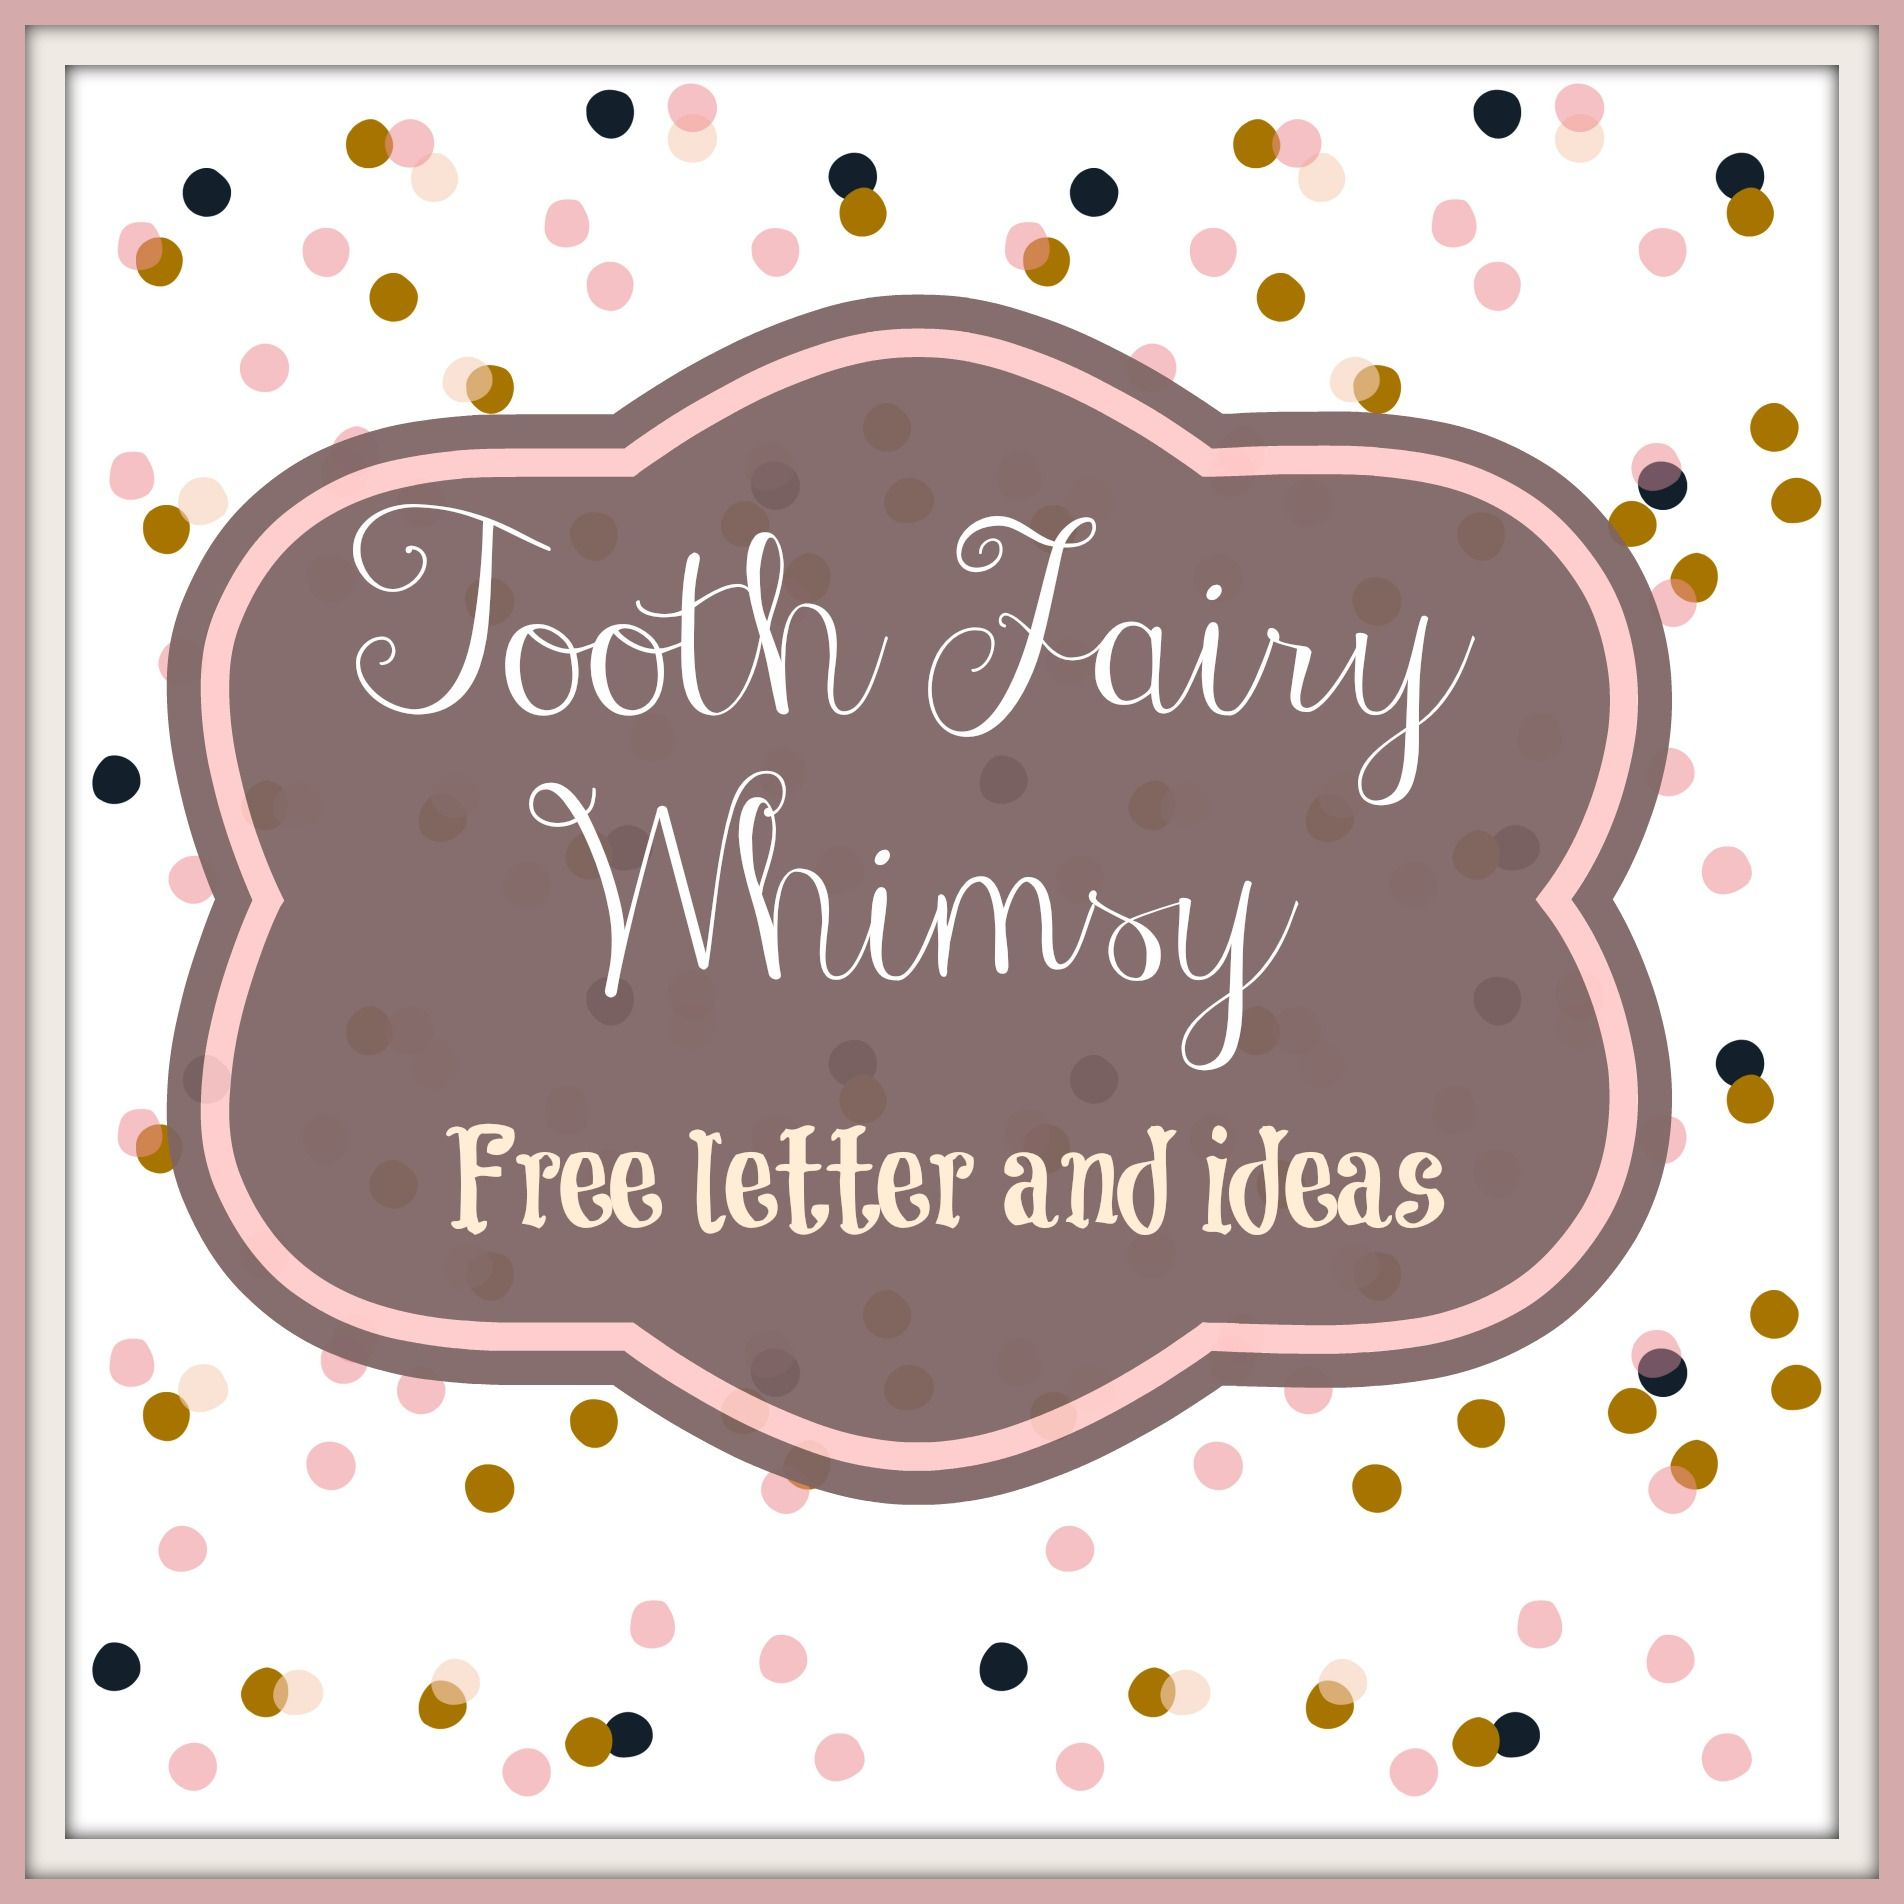 Tooth fairy ideas free intro letter and ideas to make for Fairy letter ideas